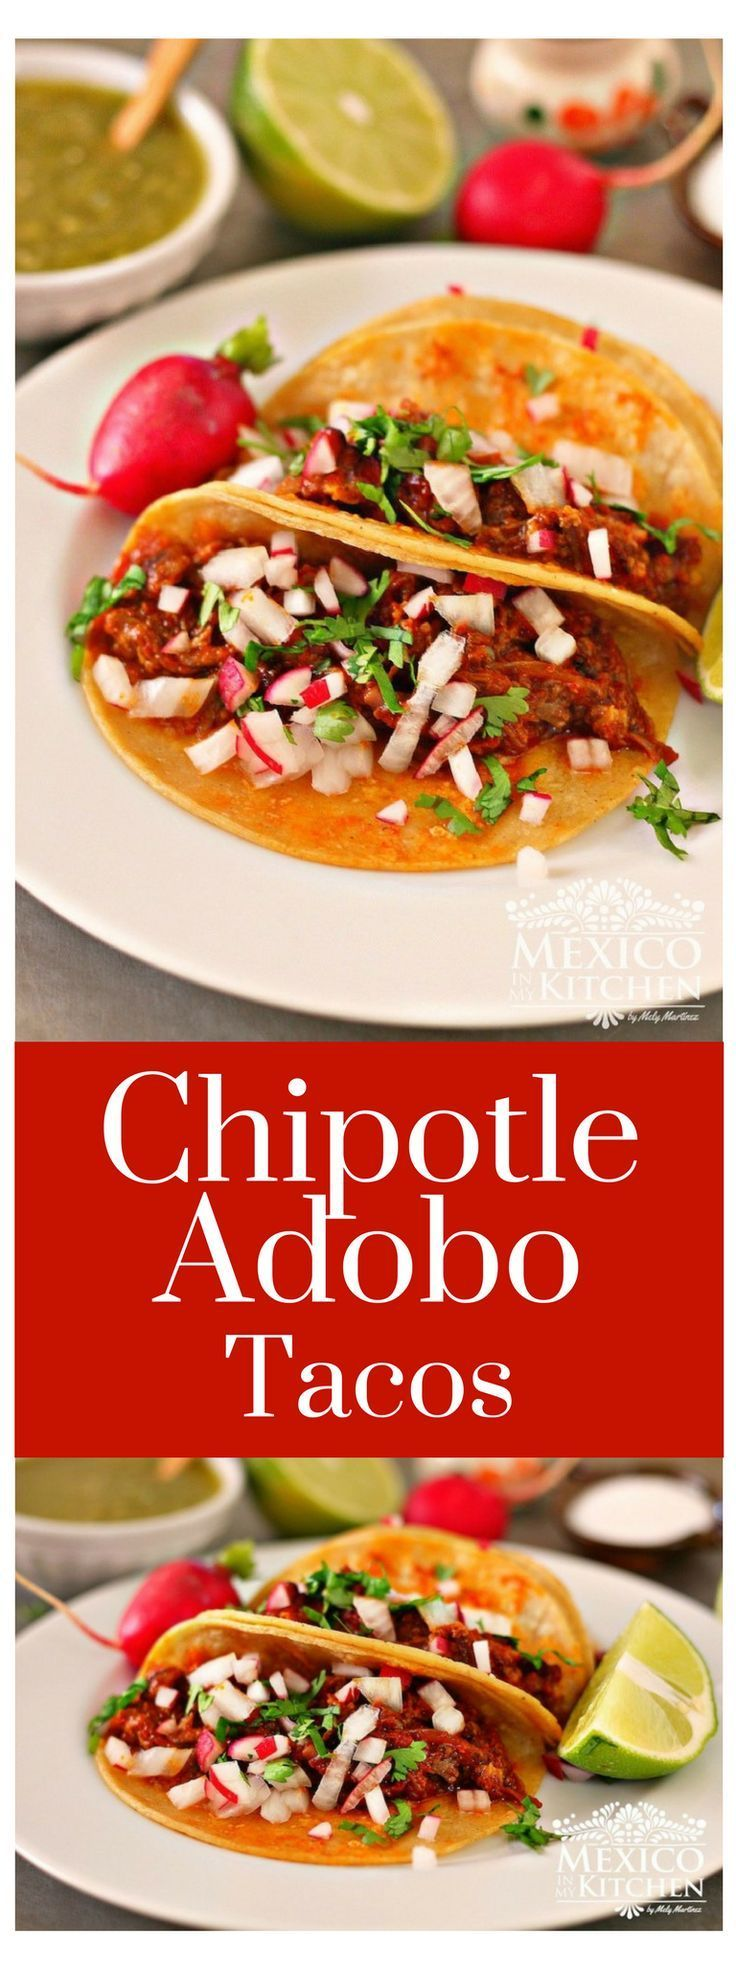 These Chipotle Adobo Tacos made with Oxtail will have you licking the plate for the last drop! The delicious sauce is smooth, and it enhances the Oxtail flavors #recipe #mexican #tacos #homecook